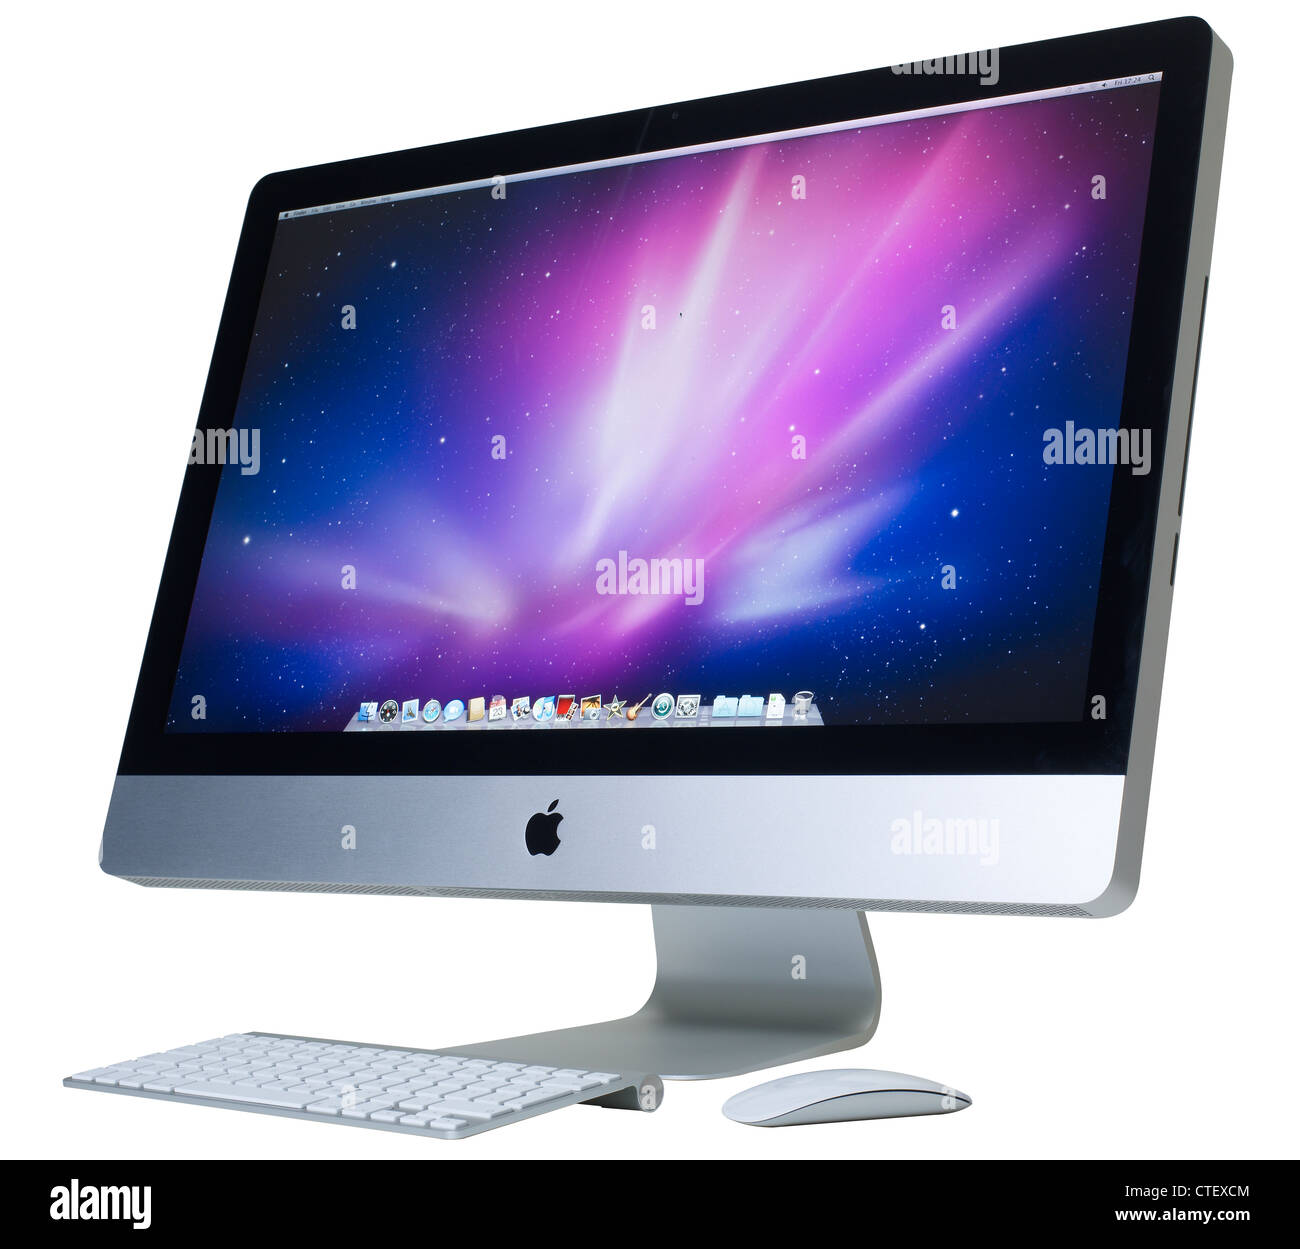 Imac Ordinateur 27 Pouces écran Ordinateur Apple Imac Banque D Images Photo Stock